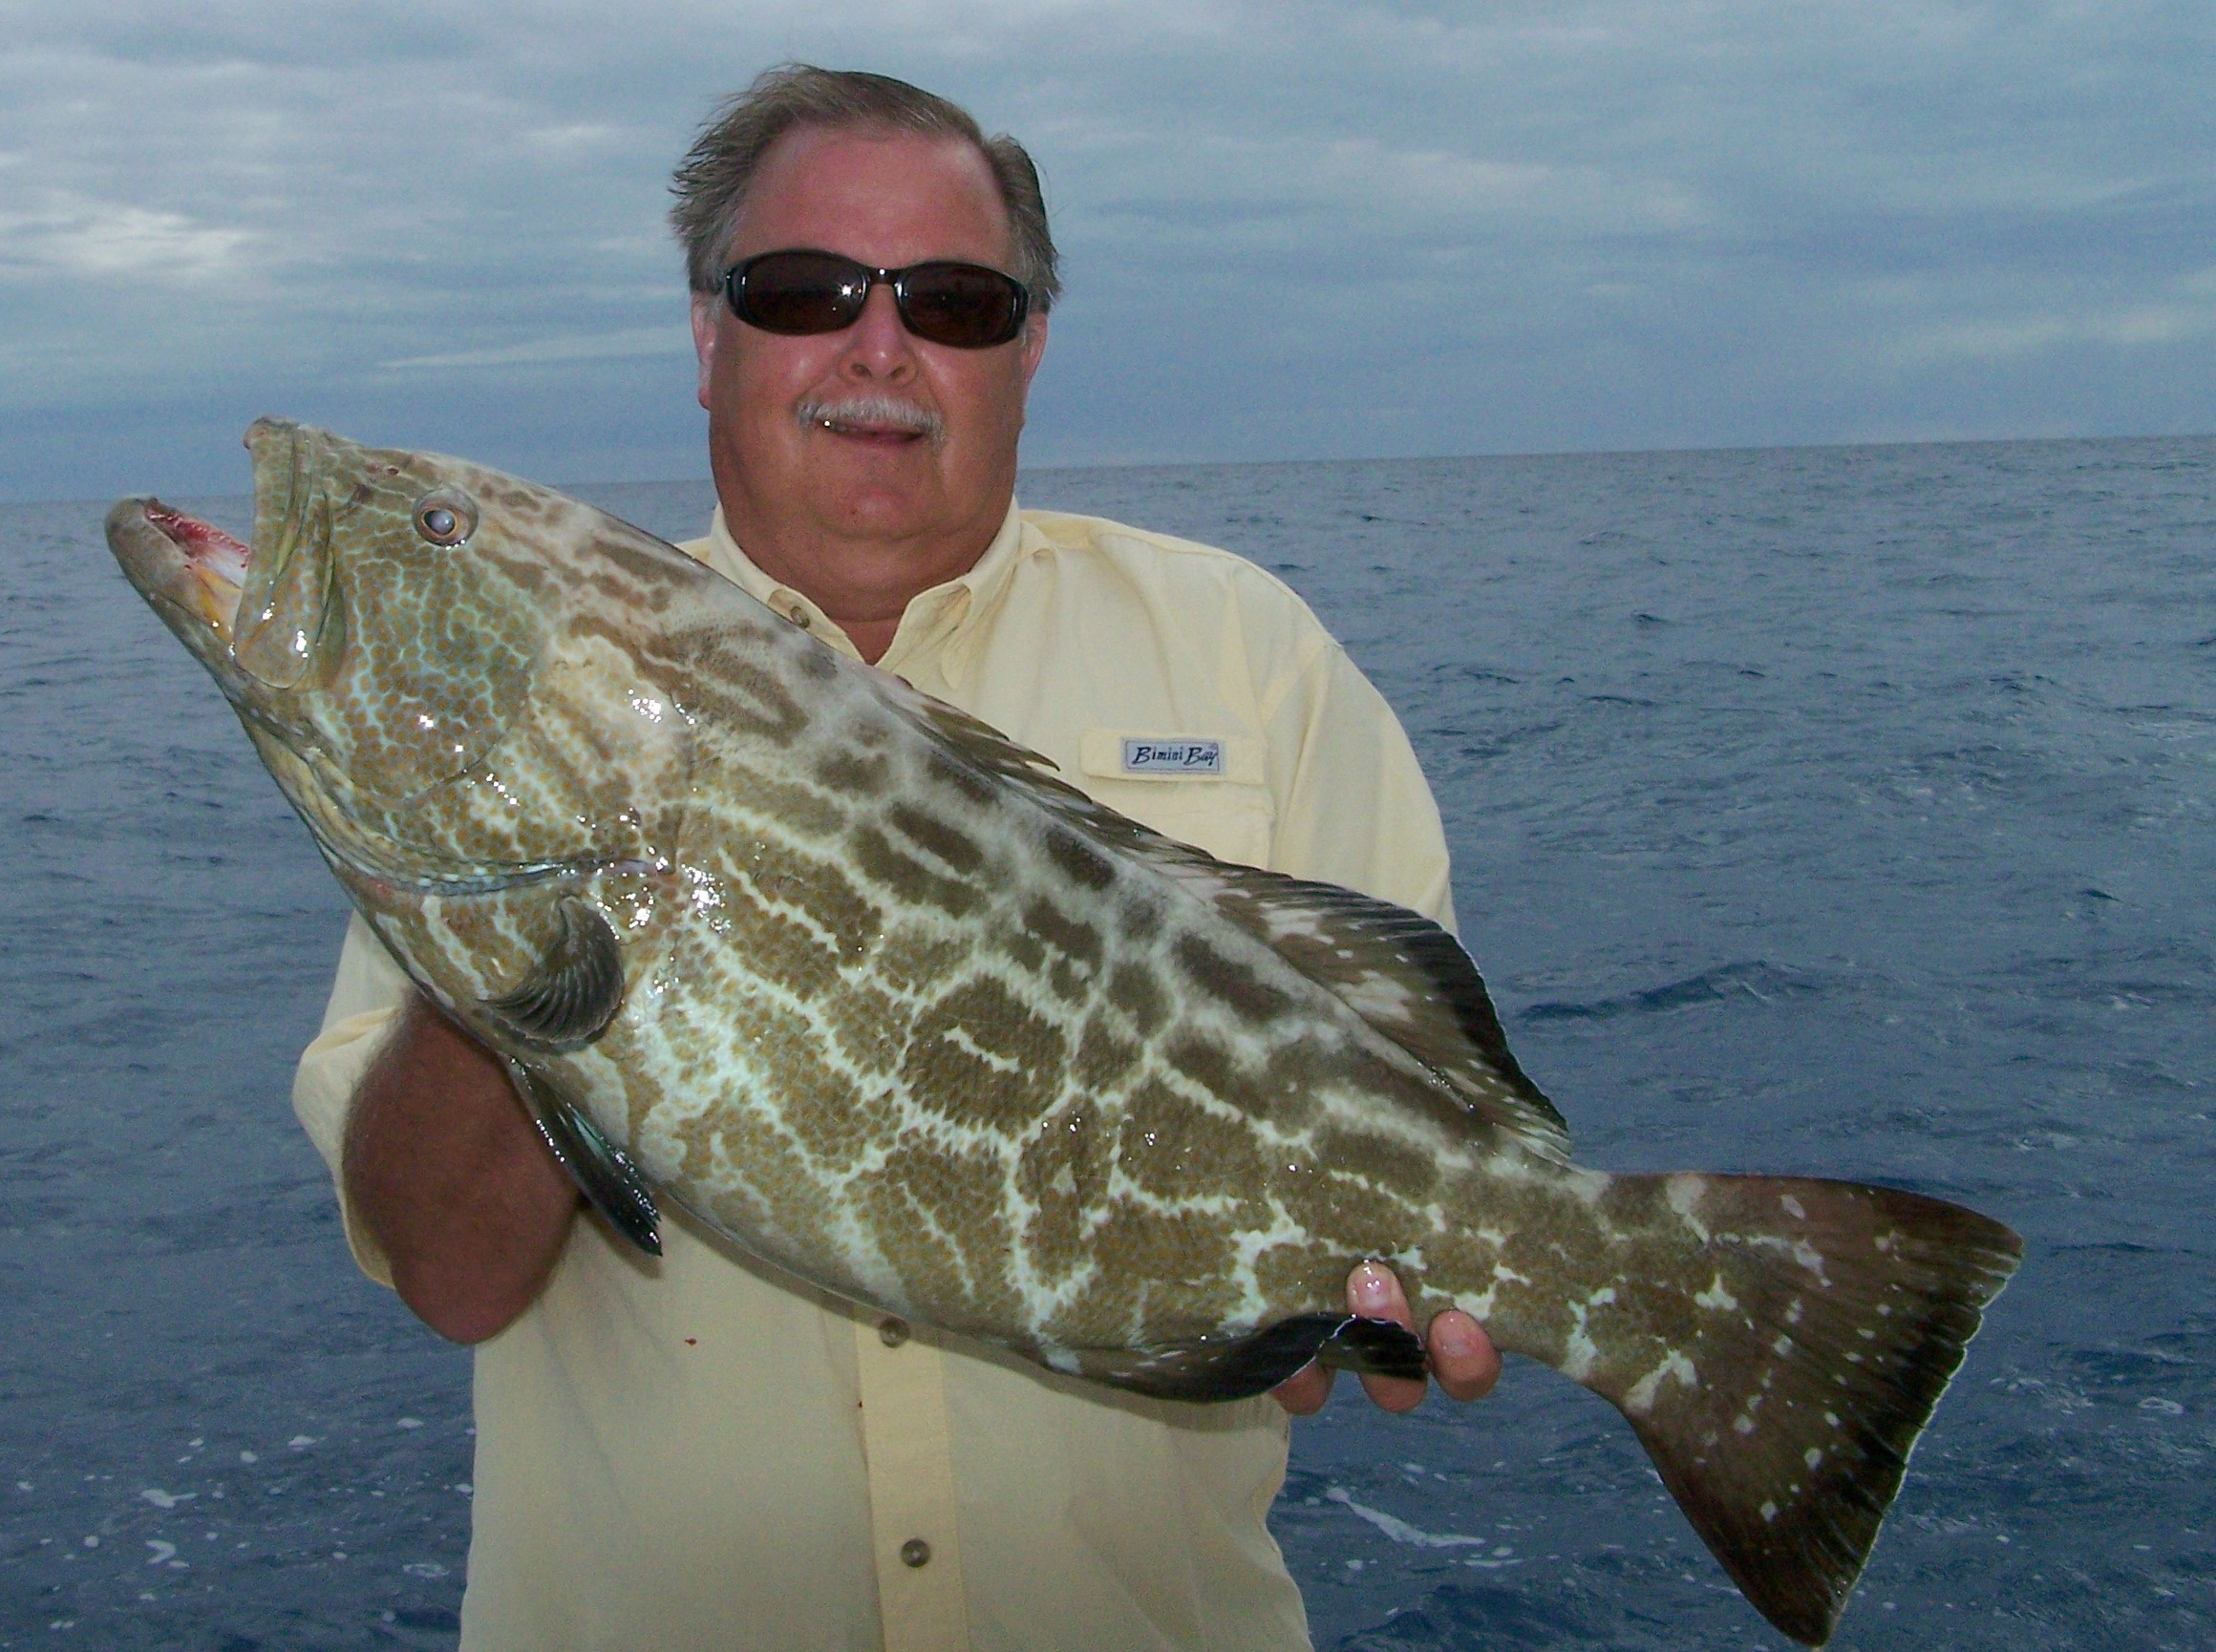 Florida keys fishing season all the best fish in 2018 for When is fishing season